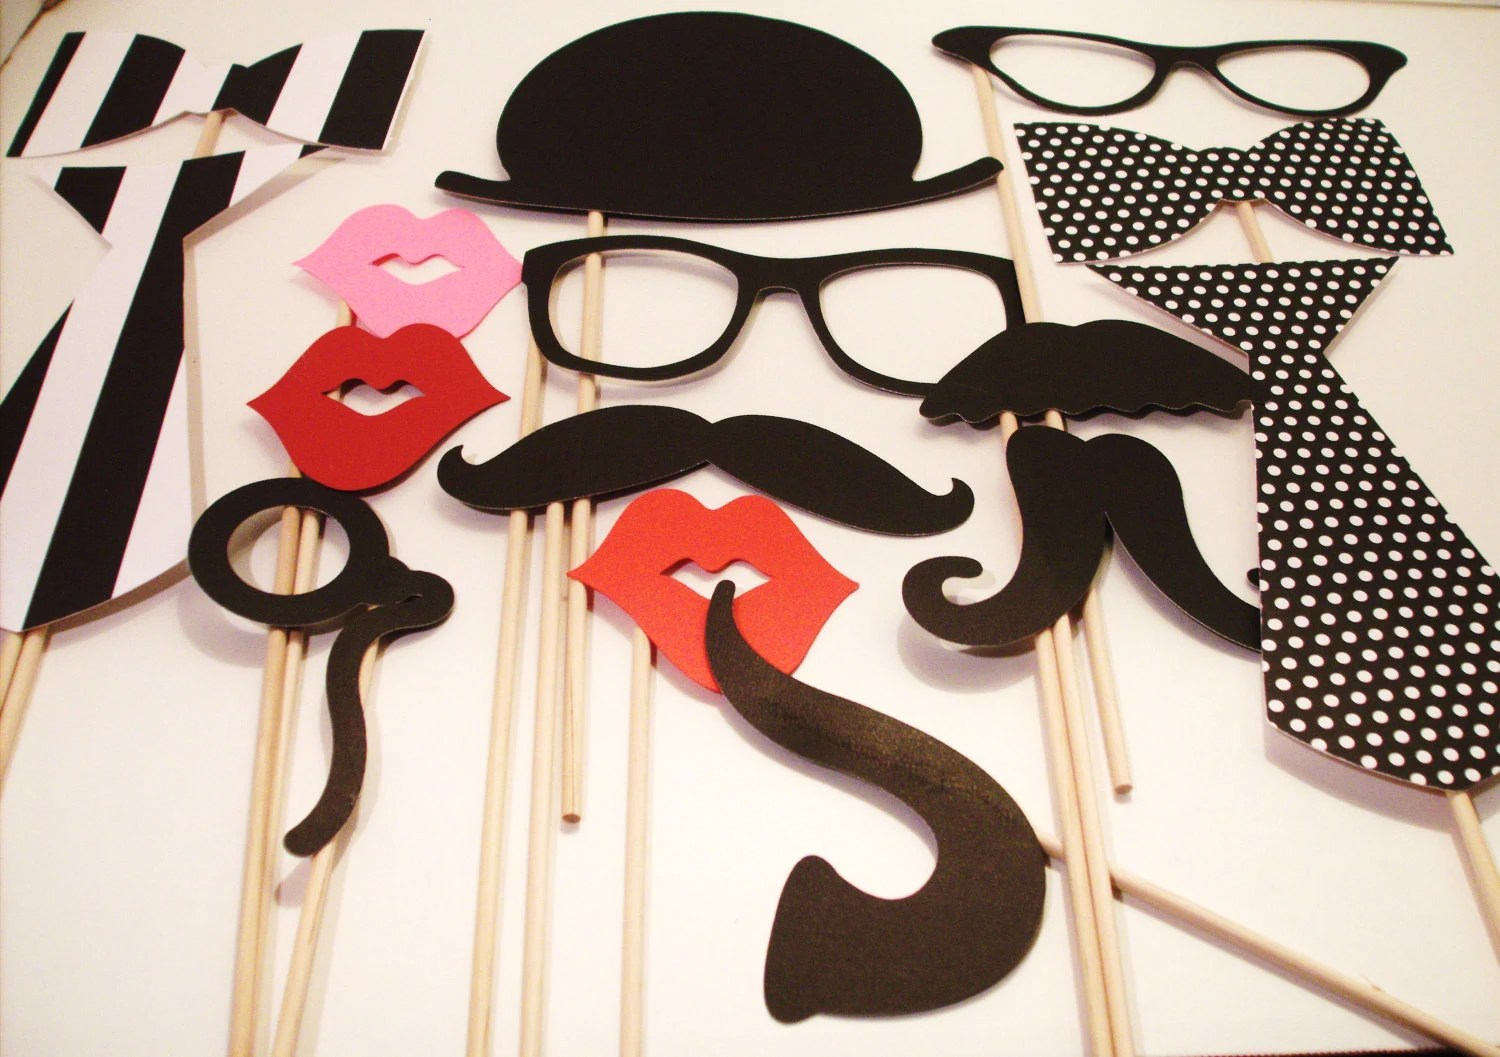 moustache props wedding photo booth props Birthday Photobooth Props Photo Props Wedding Photo props Set of 15 Black and White Hipster Set